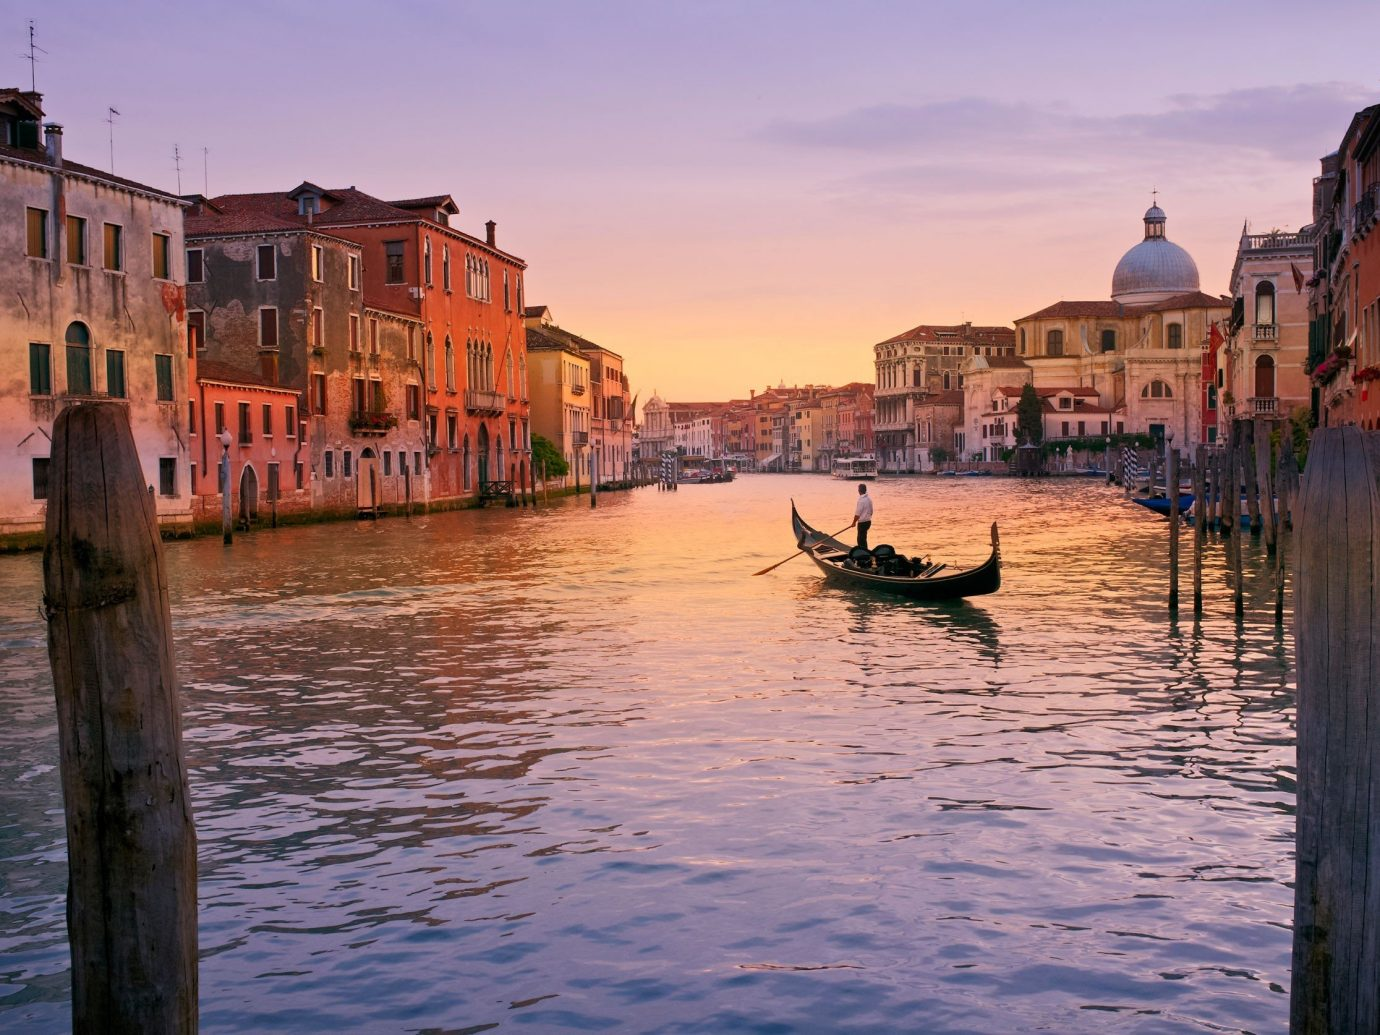 Trip Ideas outdoor sky water Boat geographical feature landform River reflection body of water Town vehicle Canal scene waterway Sea evening gondola morning Sunset channel dusk cityscape watercraft boating Harbor